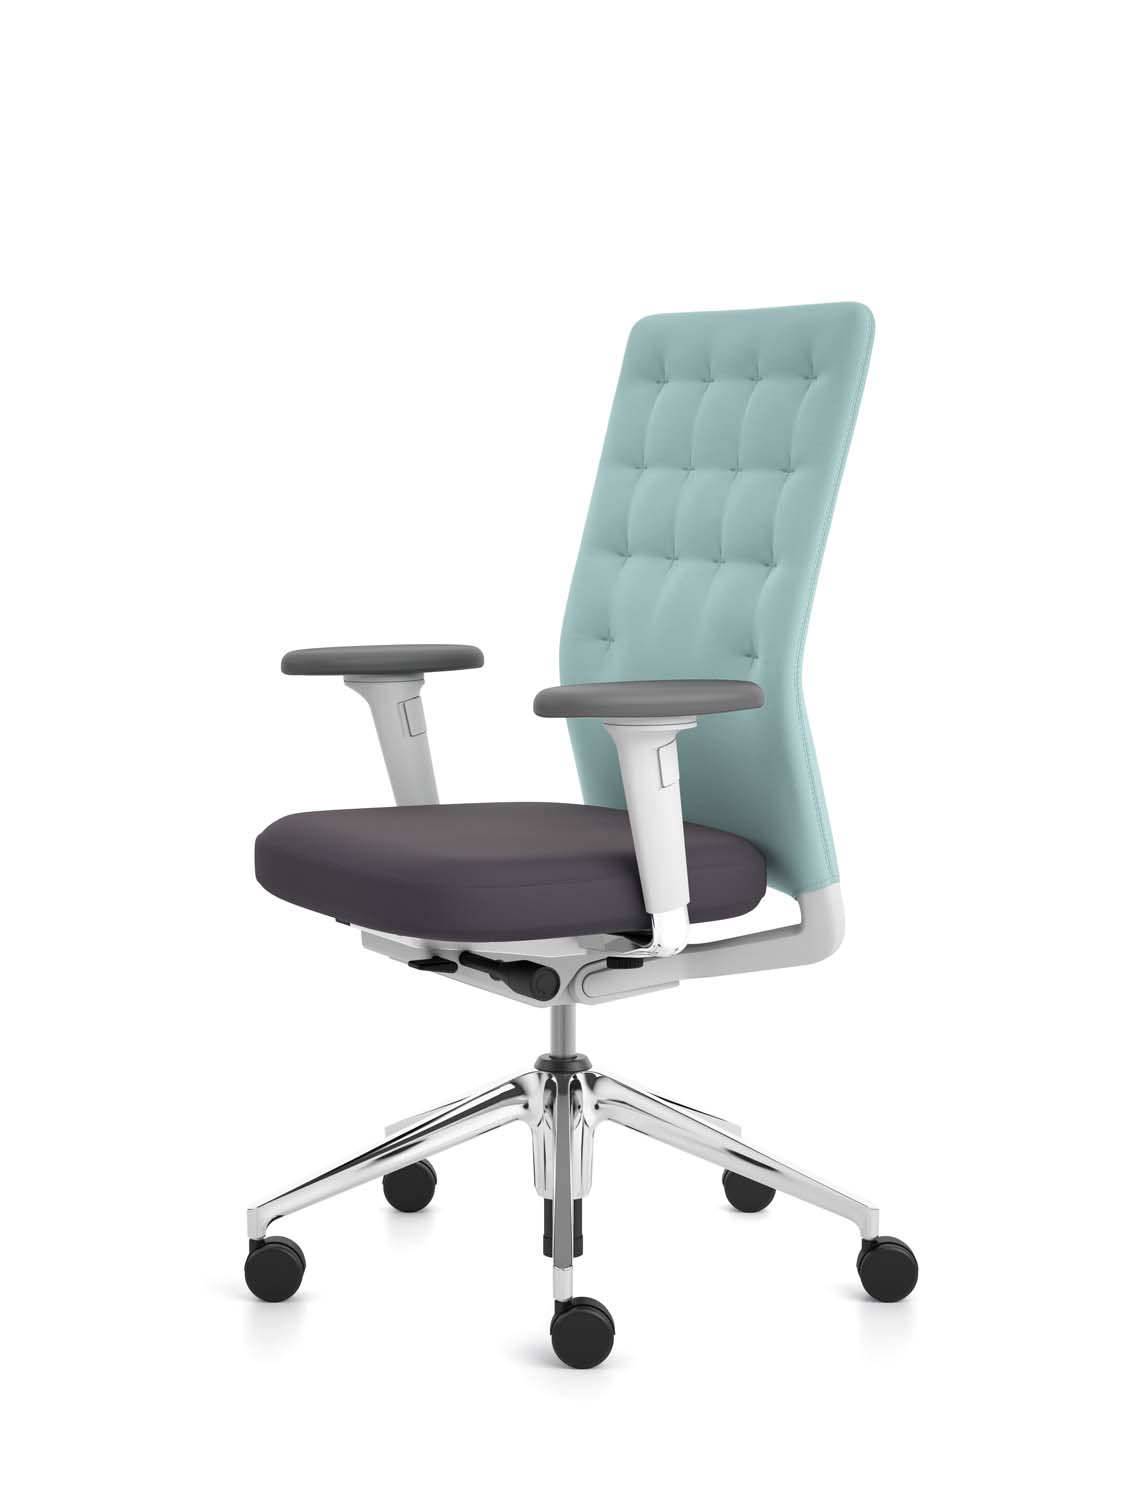 office chair qvc lounge pool chairs seating benchmarque